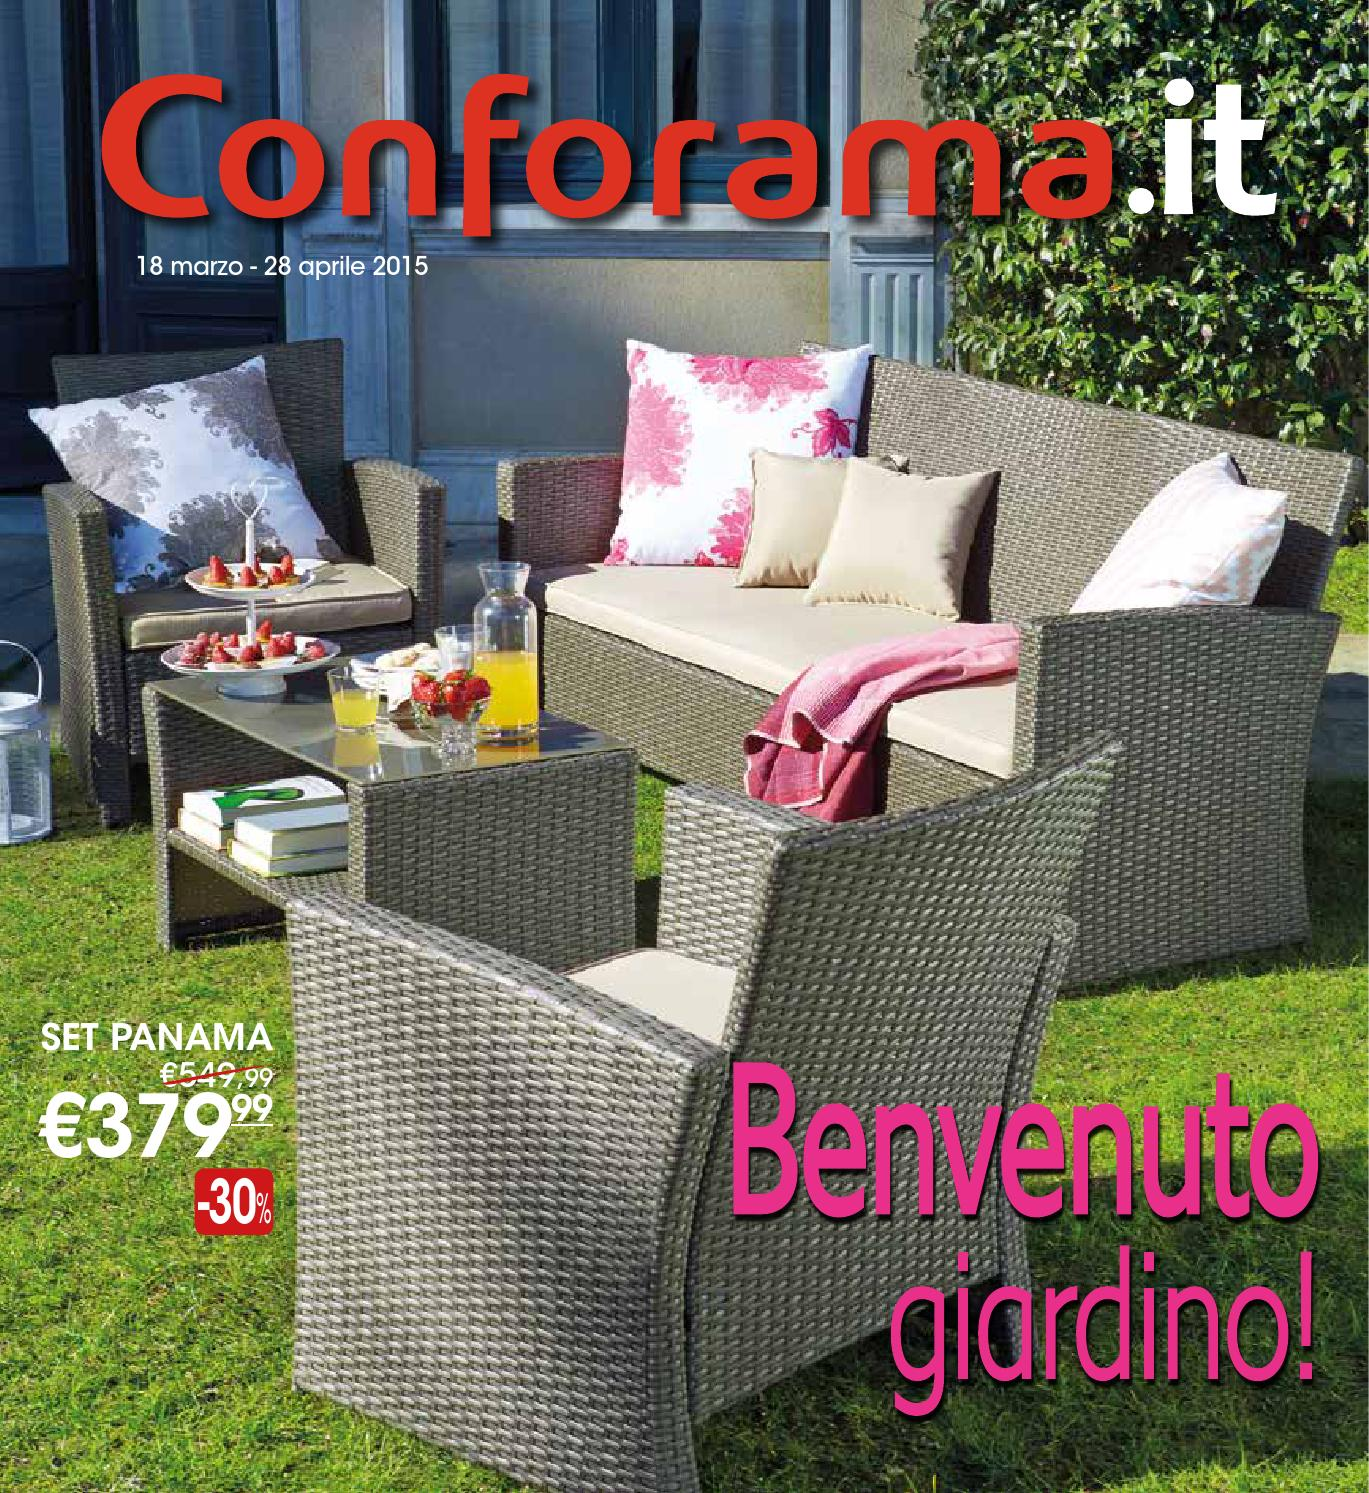 Catalogo giardino conforama 2015 by mobilpro issuu for Catalogo giardino